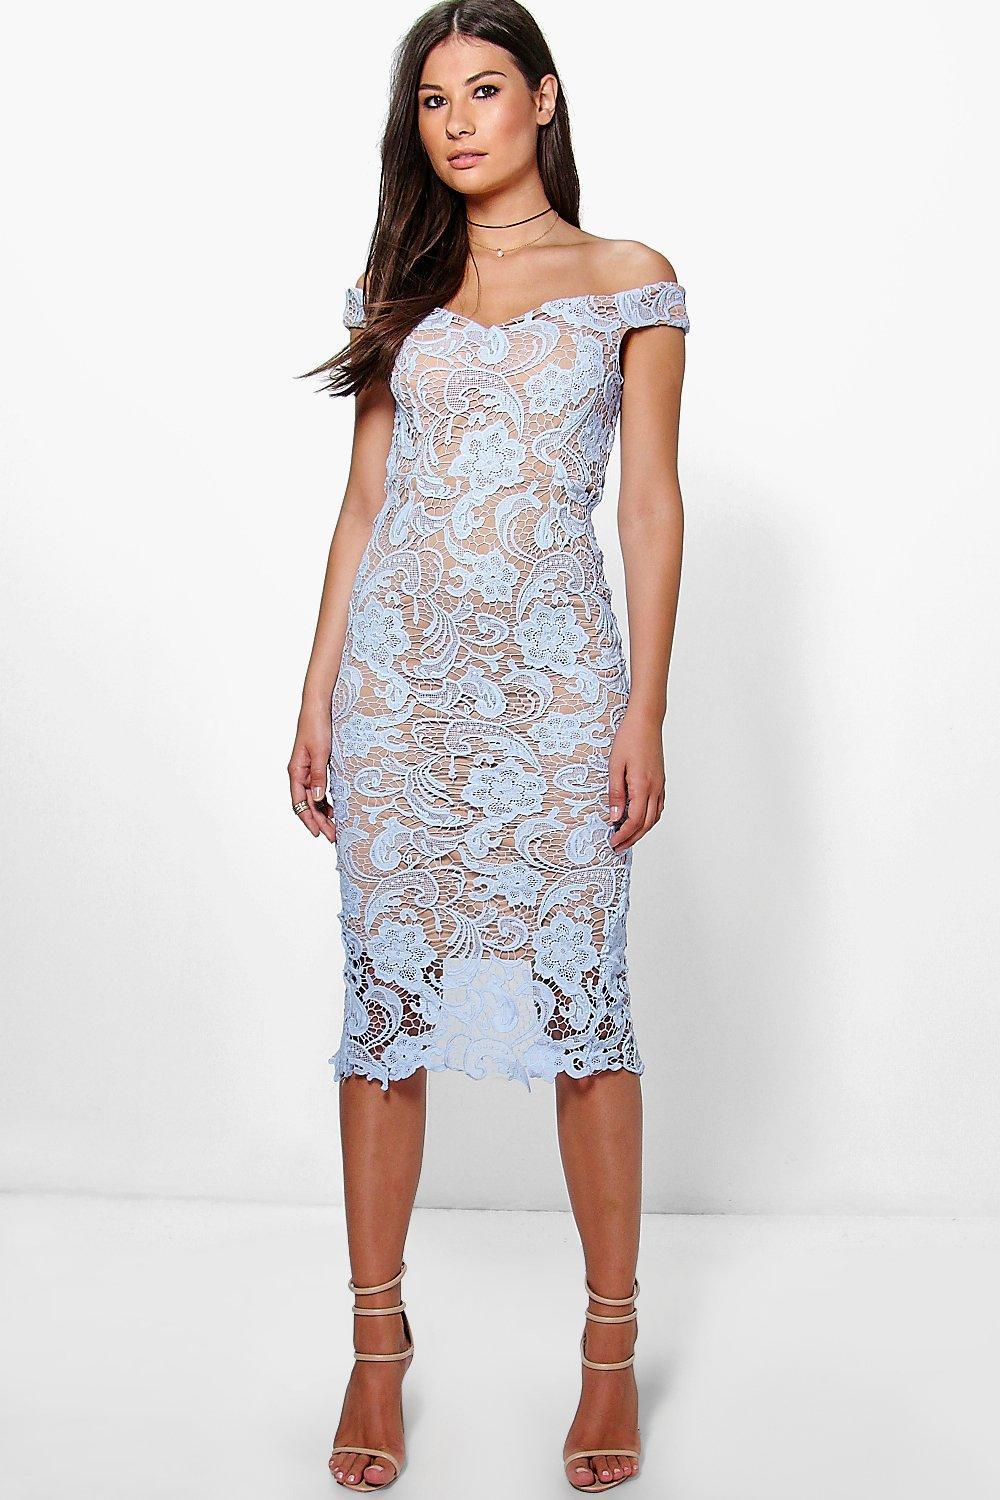 Marcie Lace Off Shoulder Midi Dress Blue - length: below the knee; neckline: off the shoulder; sleeve style: capped; fit: tight; style: bodycon; predominant colour: pale blue; occasions: evening; fibres: polyester/polyamide - stretch; sleeve length: short sleeve; texture group: lace; pattern type: fabric; pattern size: standard; pattern: patterned/print; season: a/w 2016; wardrobe: event